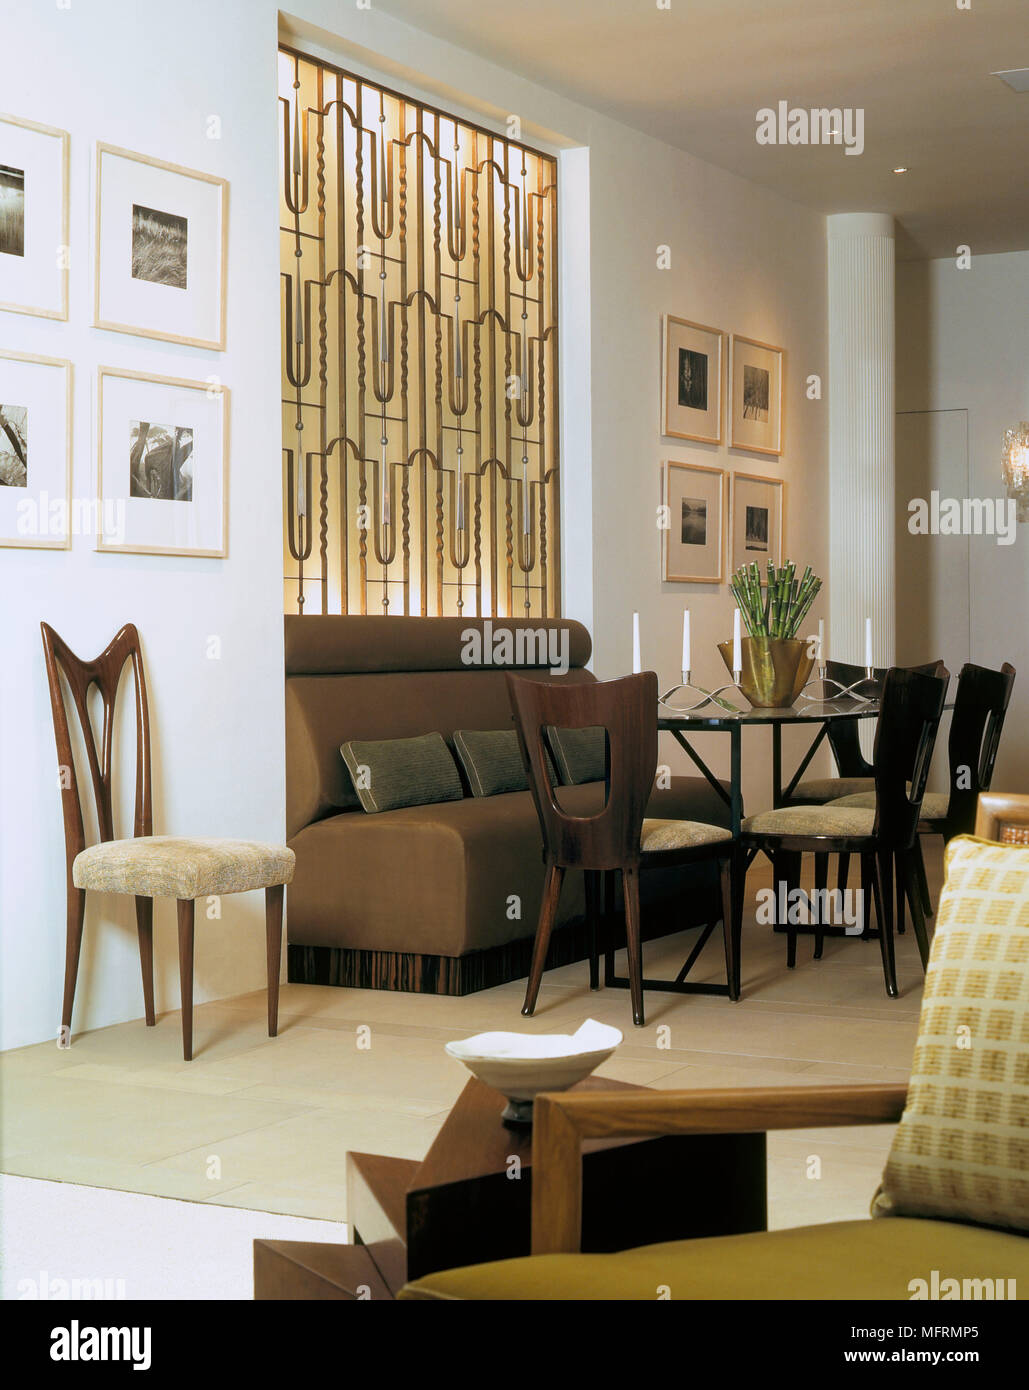 Surprising A Modern Open Plan Dining Room With Glass Table Chairs Dailytribune Chair Design For Home Dailytribuneorg